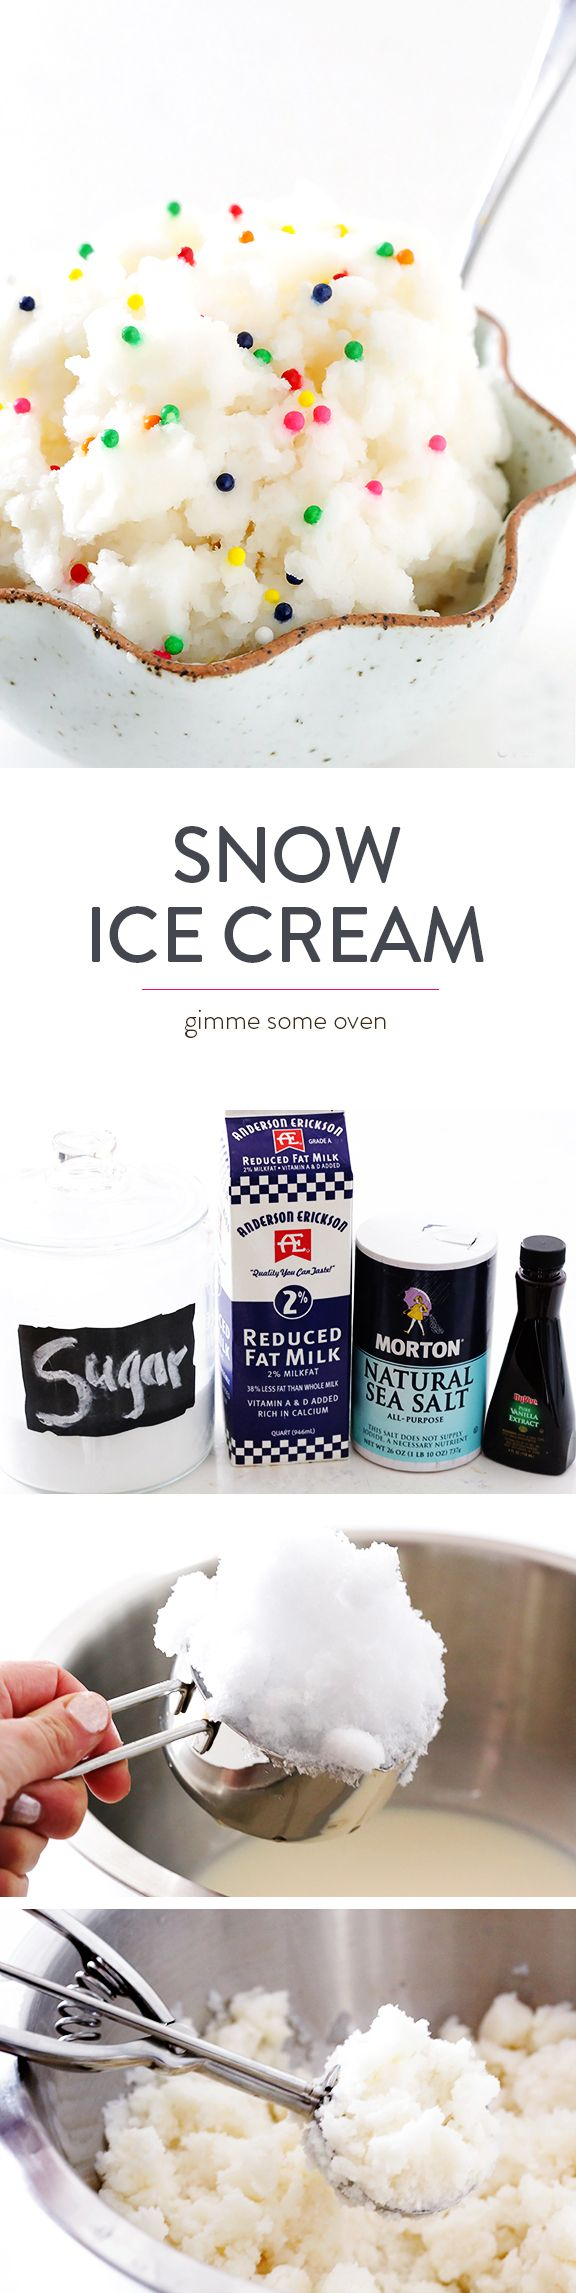 5-Minute Snow Ice Cream Recipe -- learn how to make delicious ice cream with fresh (real!) snow and 4 easy ingredients!  So fun, so fast, and so delicious | gimmesomeoven.com